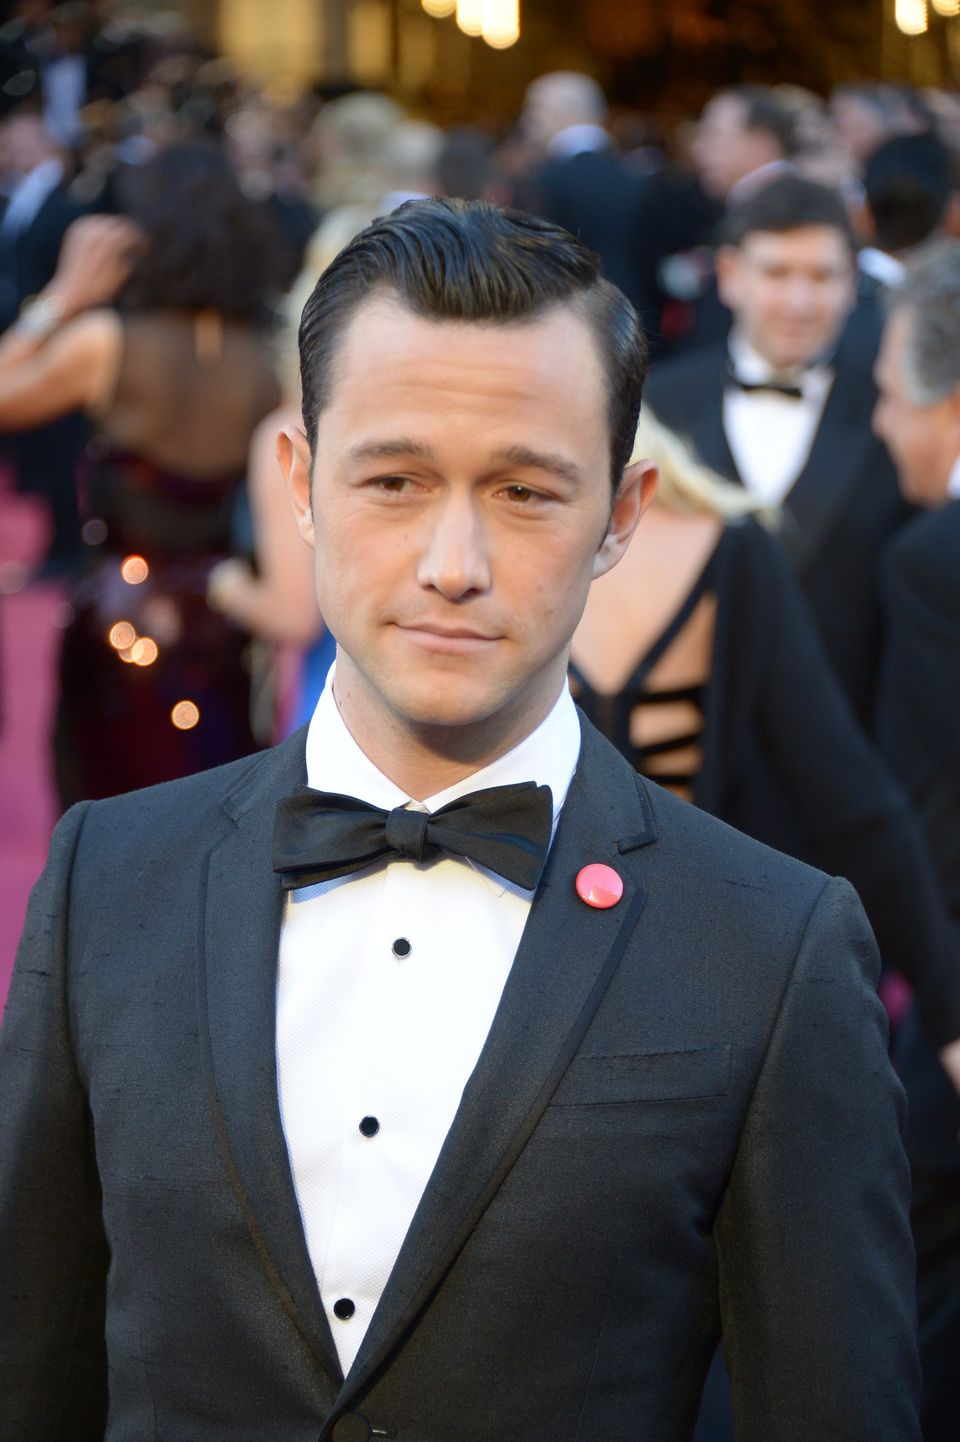 Actor Joseph Gordon-Levitt arrives on the red carpet for the 85th Annual Academy Awards on February 24, 2013 in Hollywood, Ca